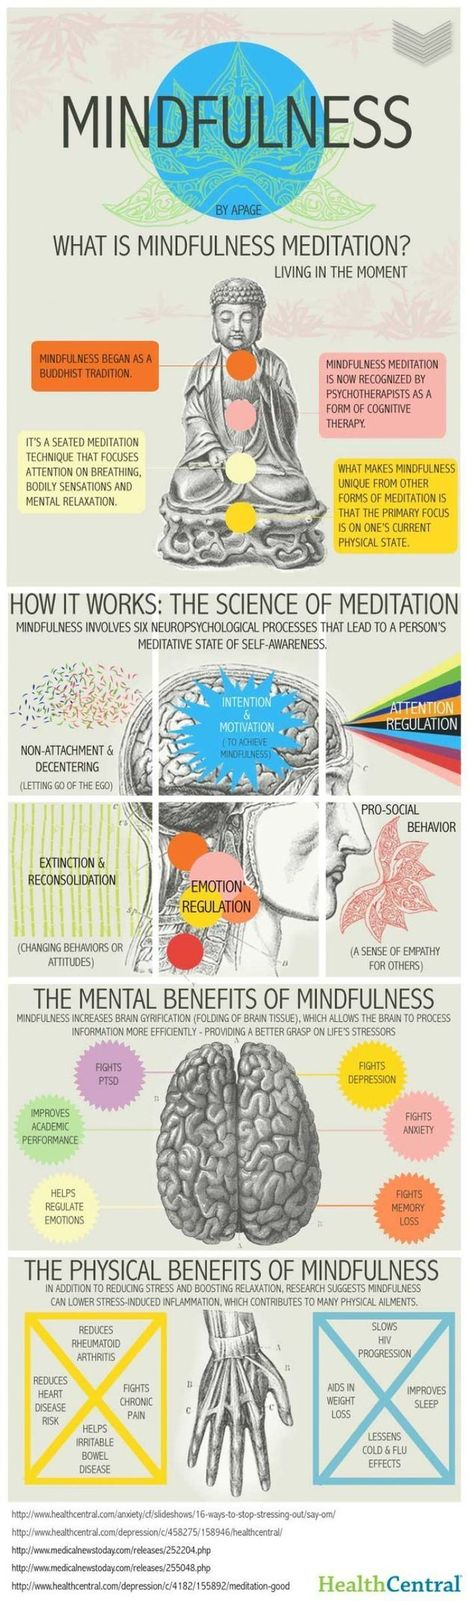 14 Benefits of Mindfulness. {Infographic} | Wellness and Mindfulness | Scoop.it